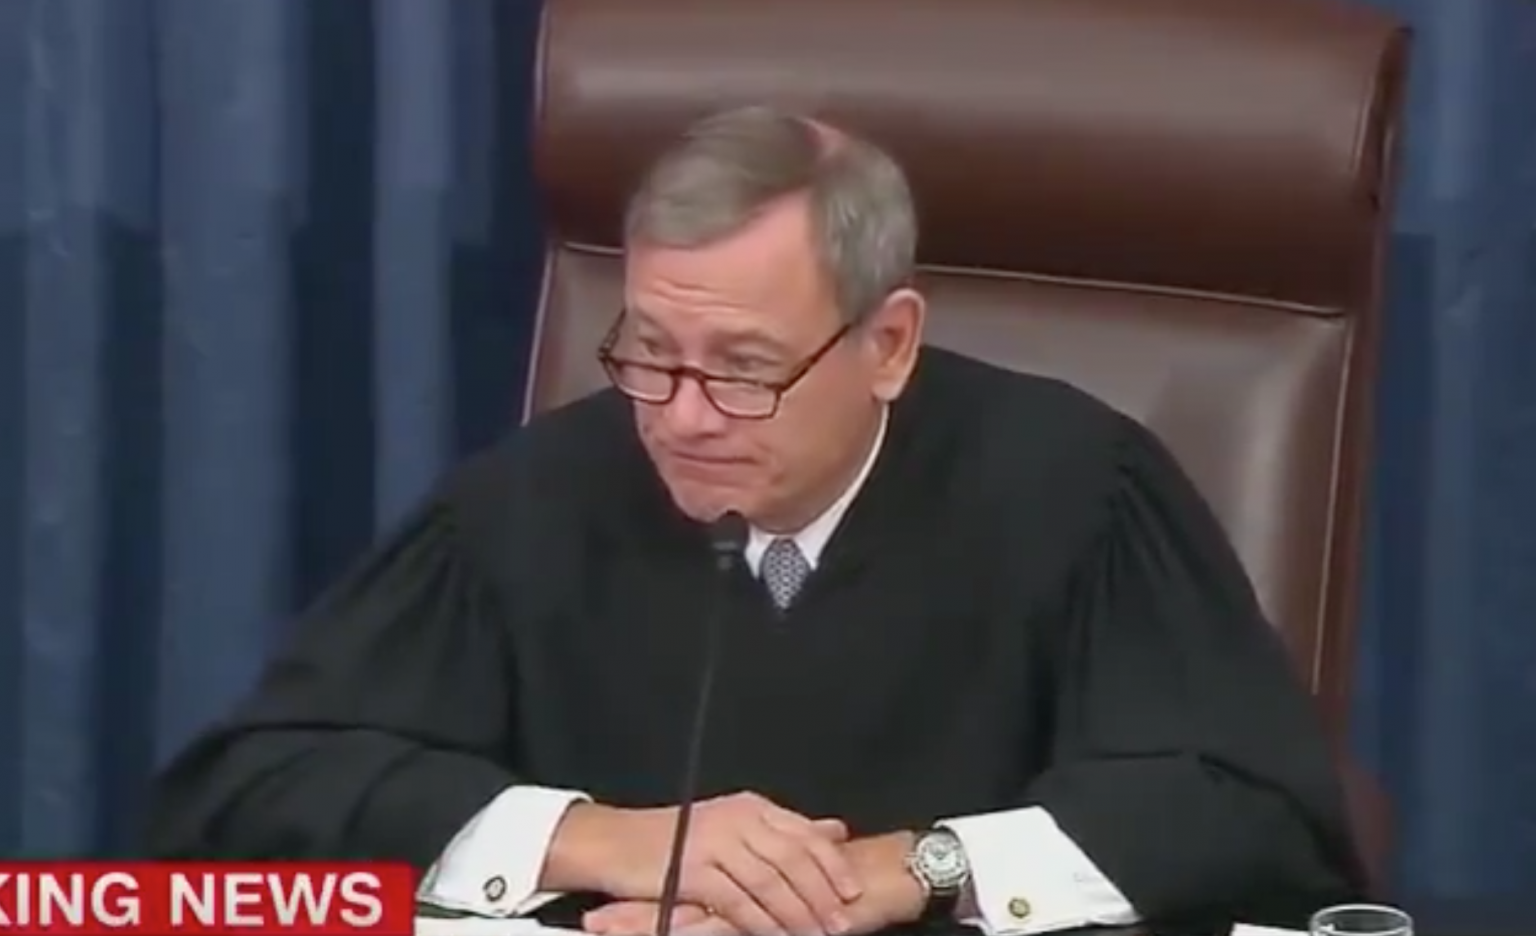 Sen. Warren publicly attacks, attempts to humiliate Supreme Court Justice Roberts... who then stares her down.